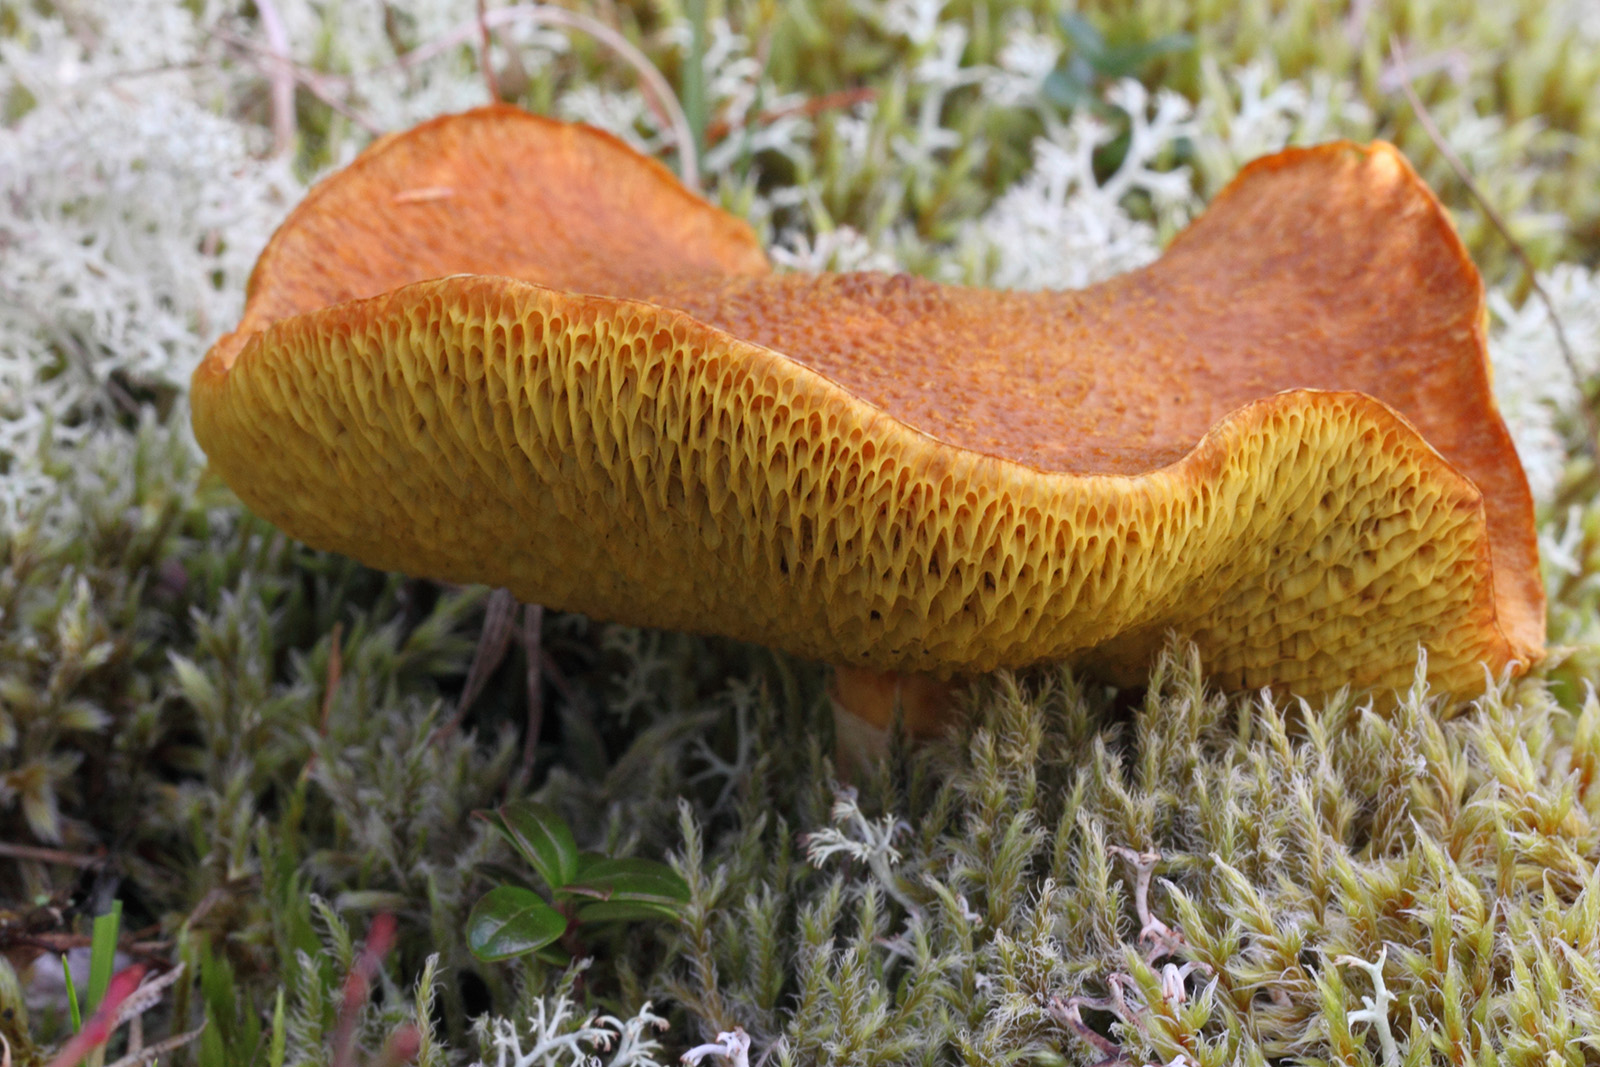 The fruiting body of <i>Suillus cavipes</i>